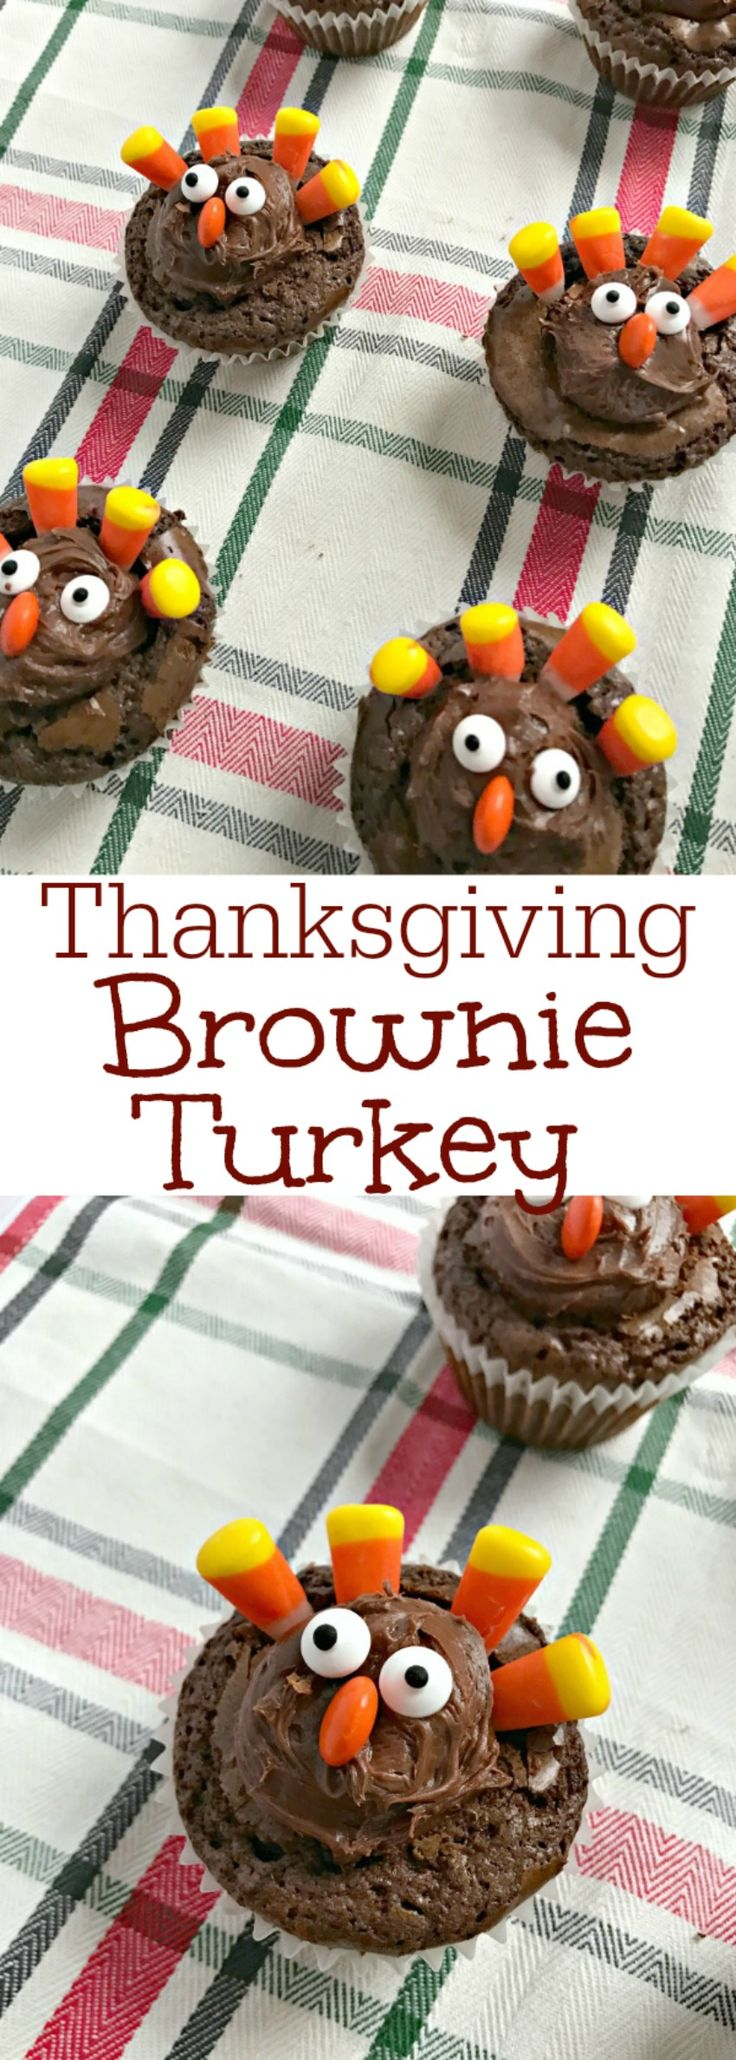 A few more days until Thanksgiving and I wanted to make a cute and simple Thanksgiving Dessert idea for the kids to enjoy after dinner this year. These are SO easy to make and my kids absolutely loved them! Let's make some cute Thanksgiving Brownie Turkeys!! These are literally the easiest to make. I used …